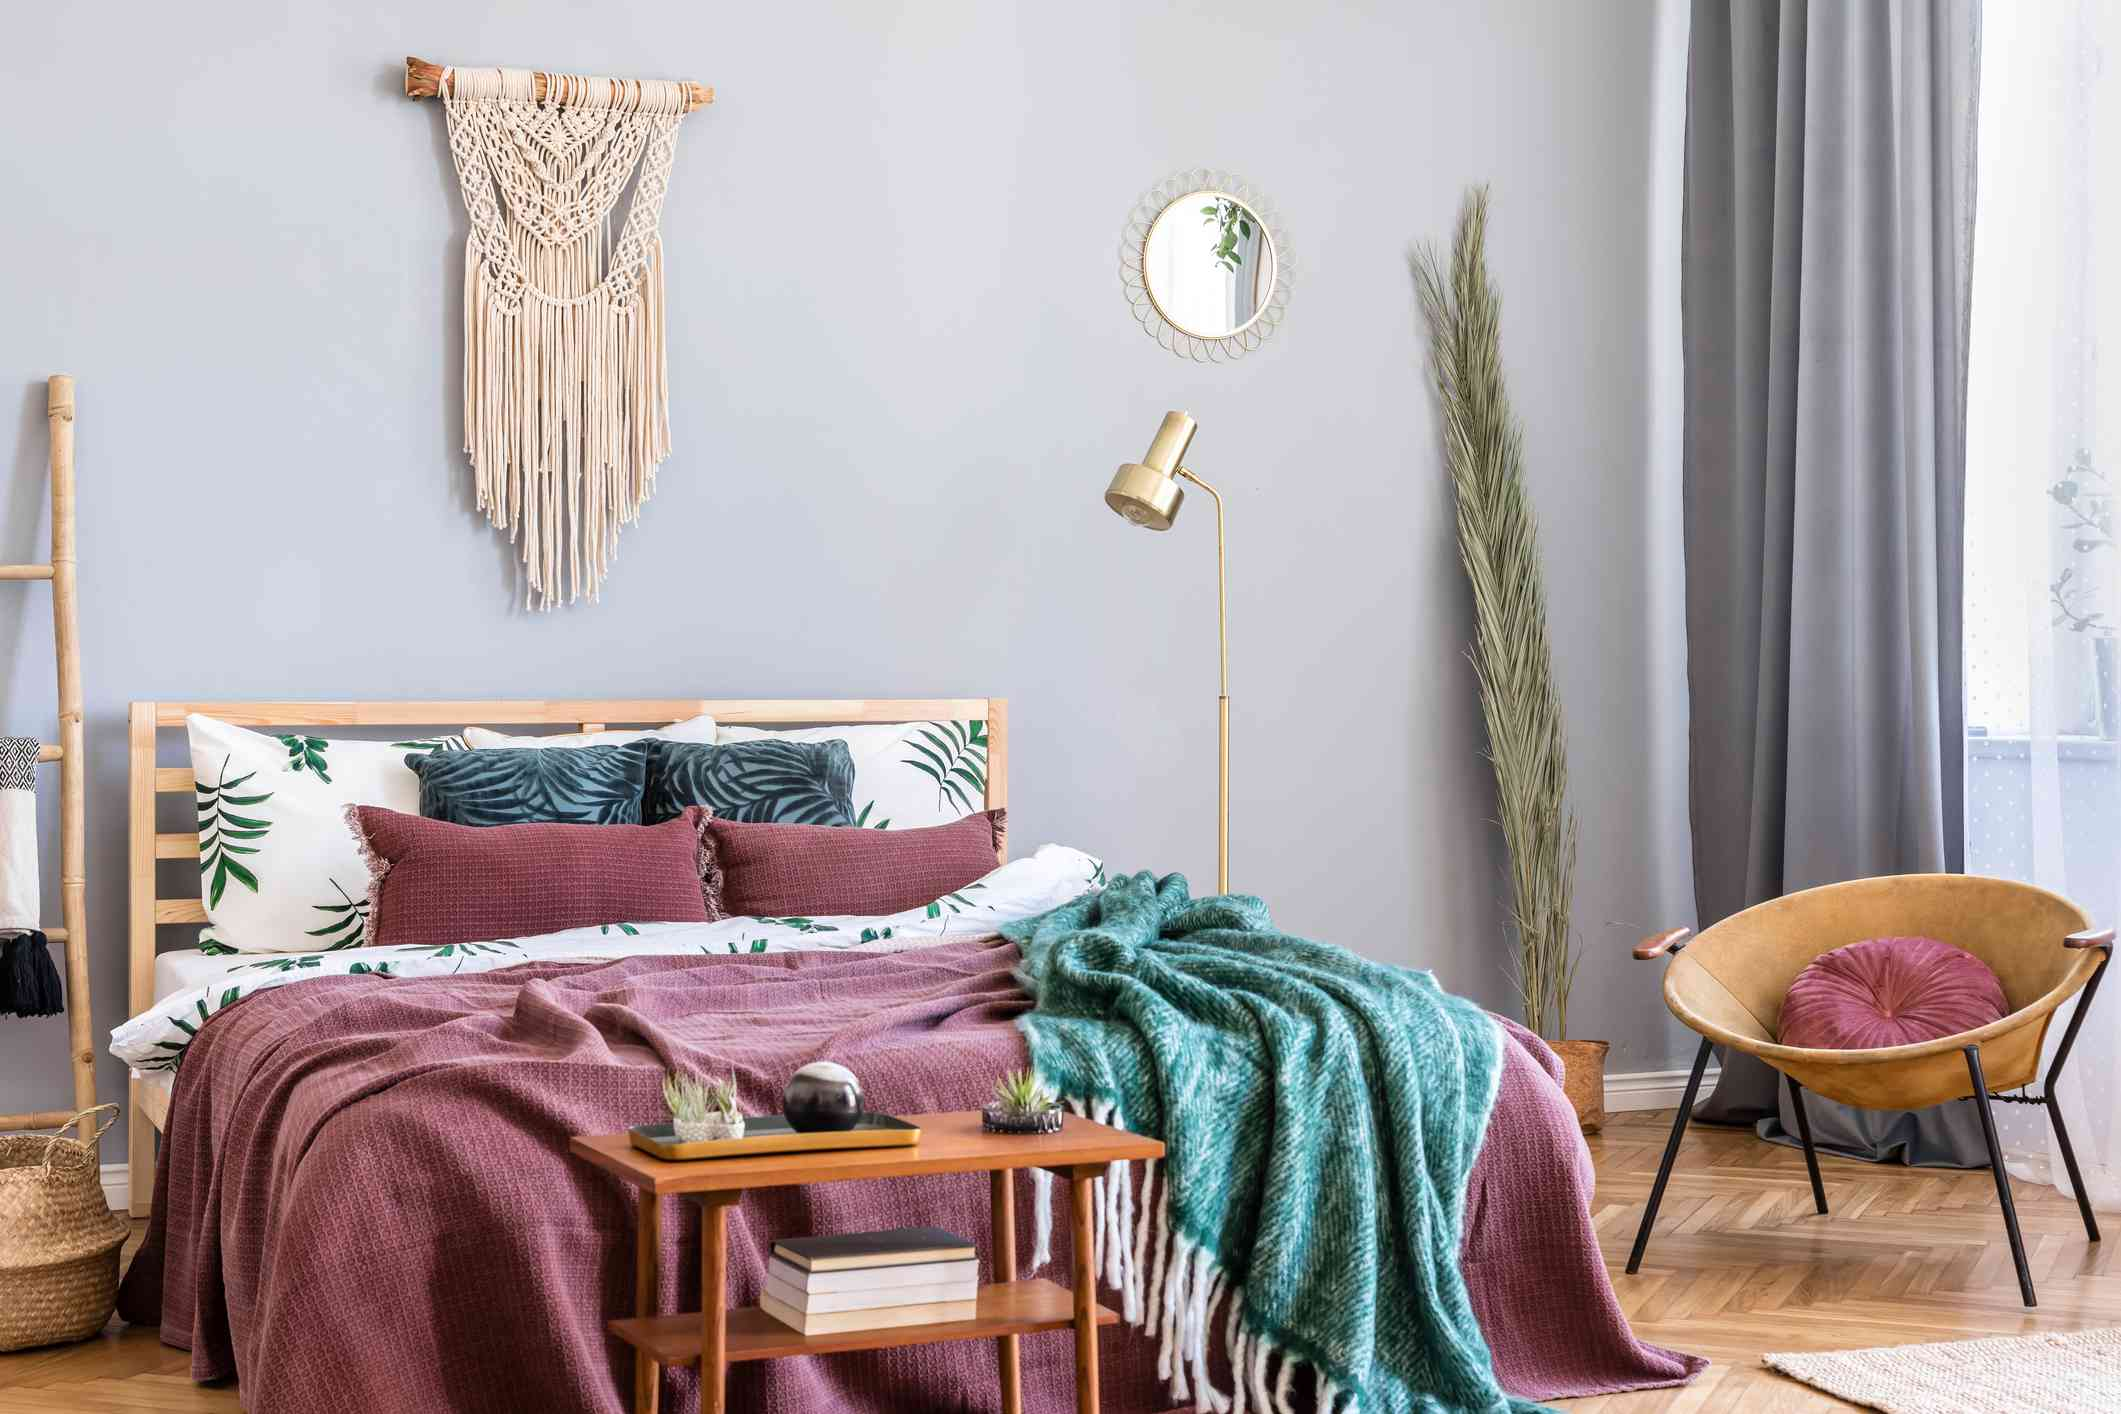 scandinavian style bedroom with mauve, teal, and honey yellow color scheme